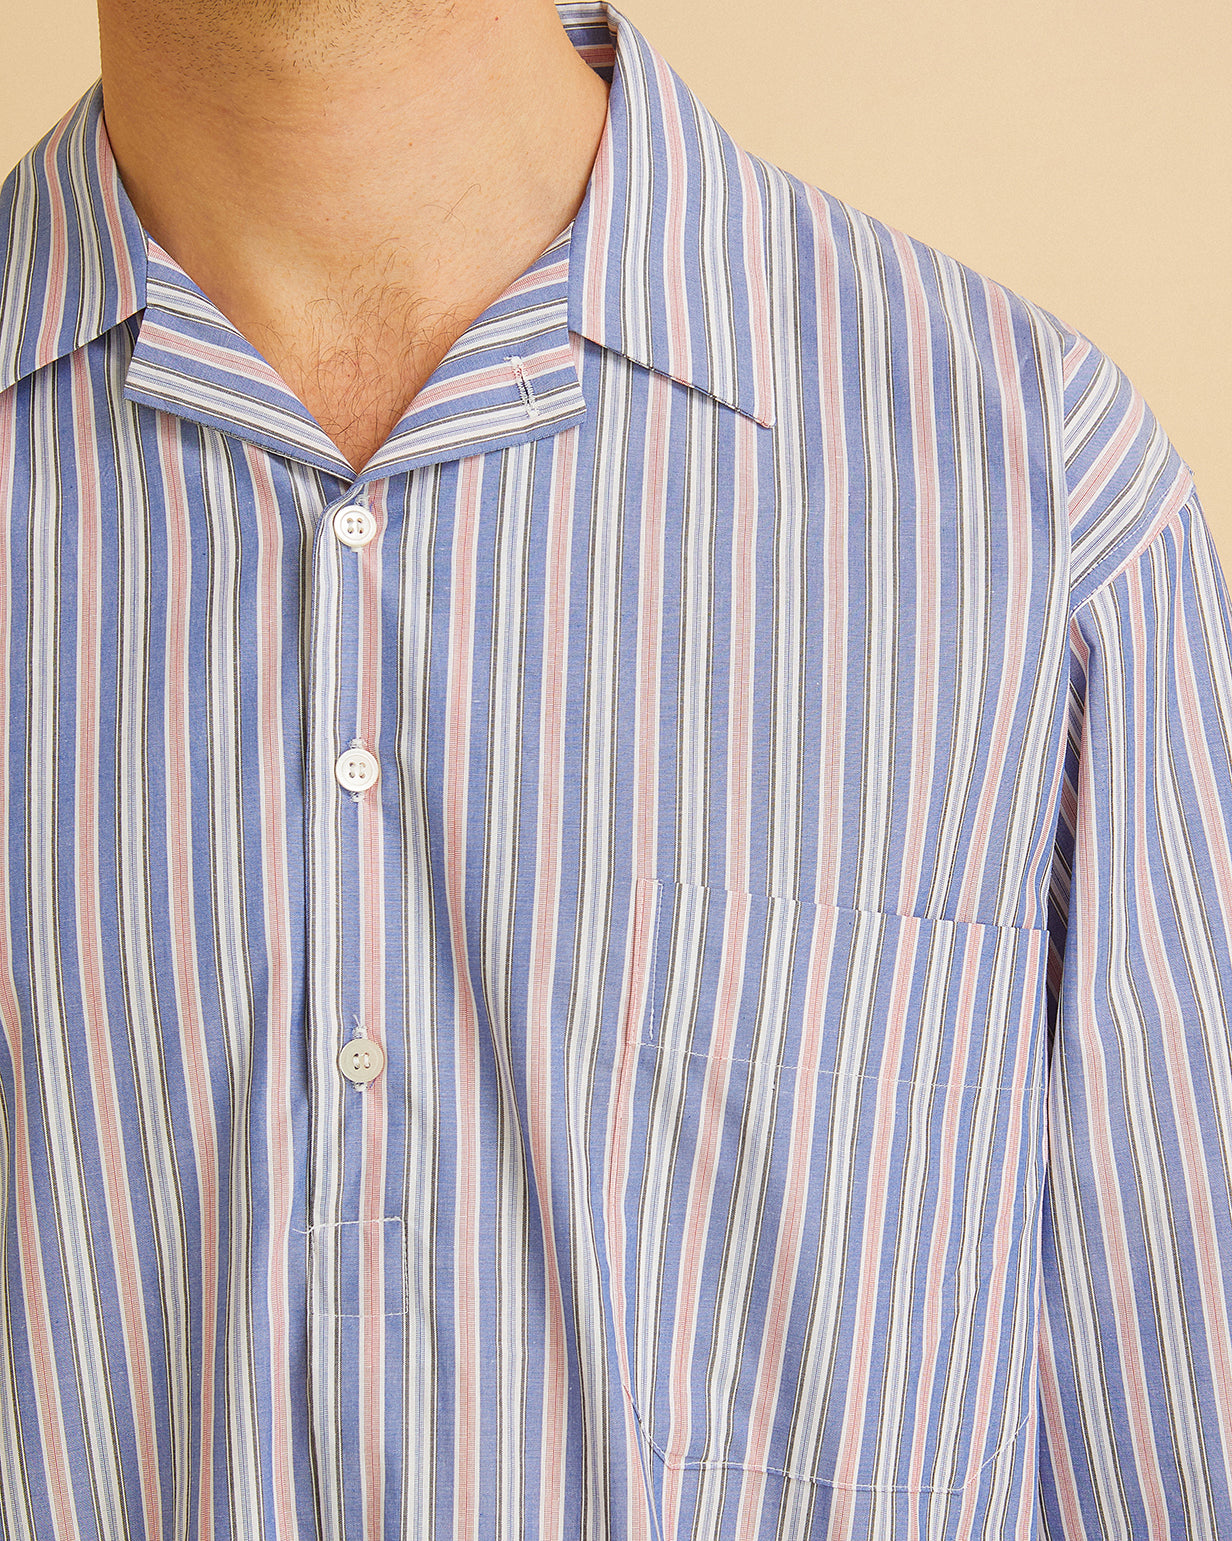 Men's Classic Cotton Nightshirt Blue Red Stripe | Bonsoir of London